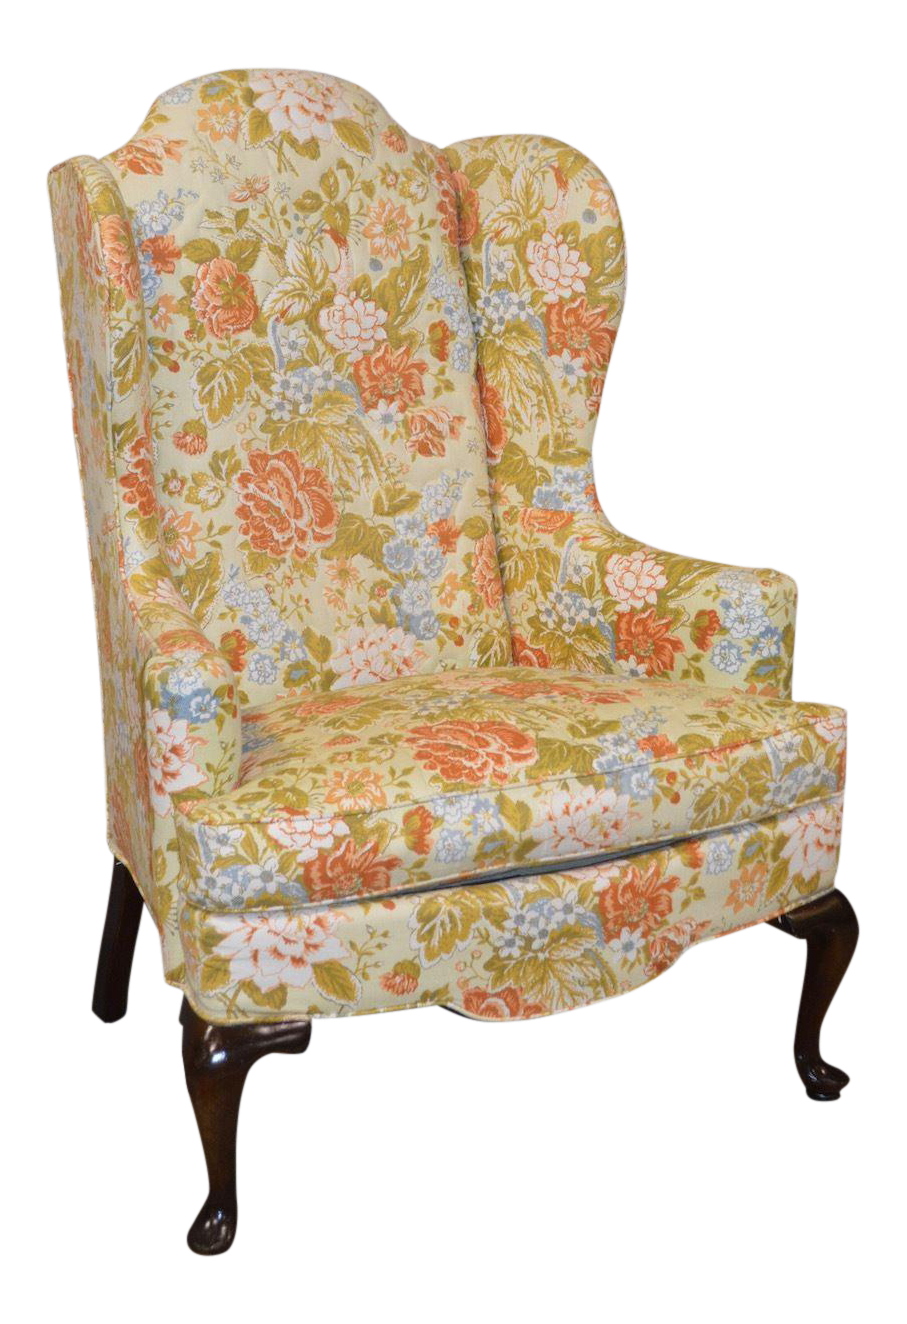 Drexel Floral Queen Anne Style Wing Chair  sc 1 st  Chairish & Drexel Floral Queen Anne Style Wing Chair | Chairish